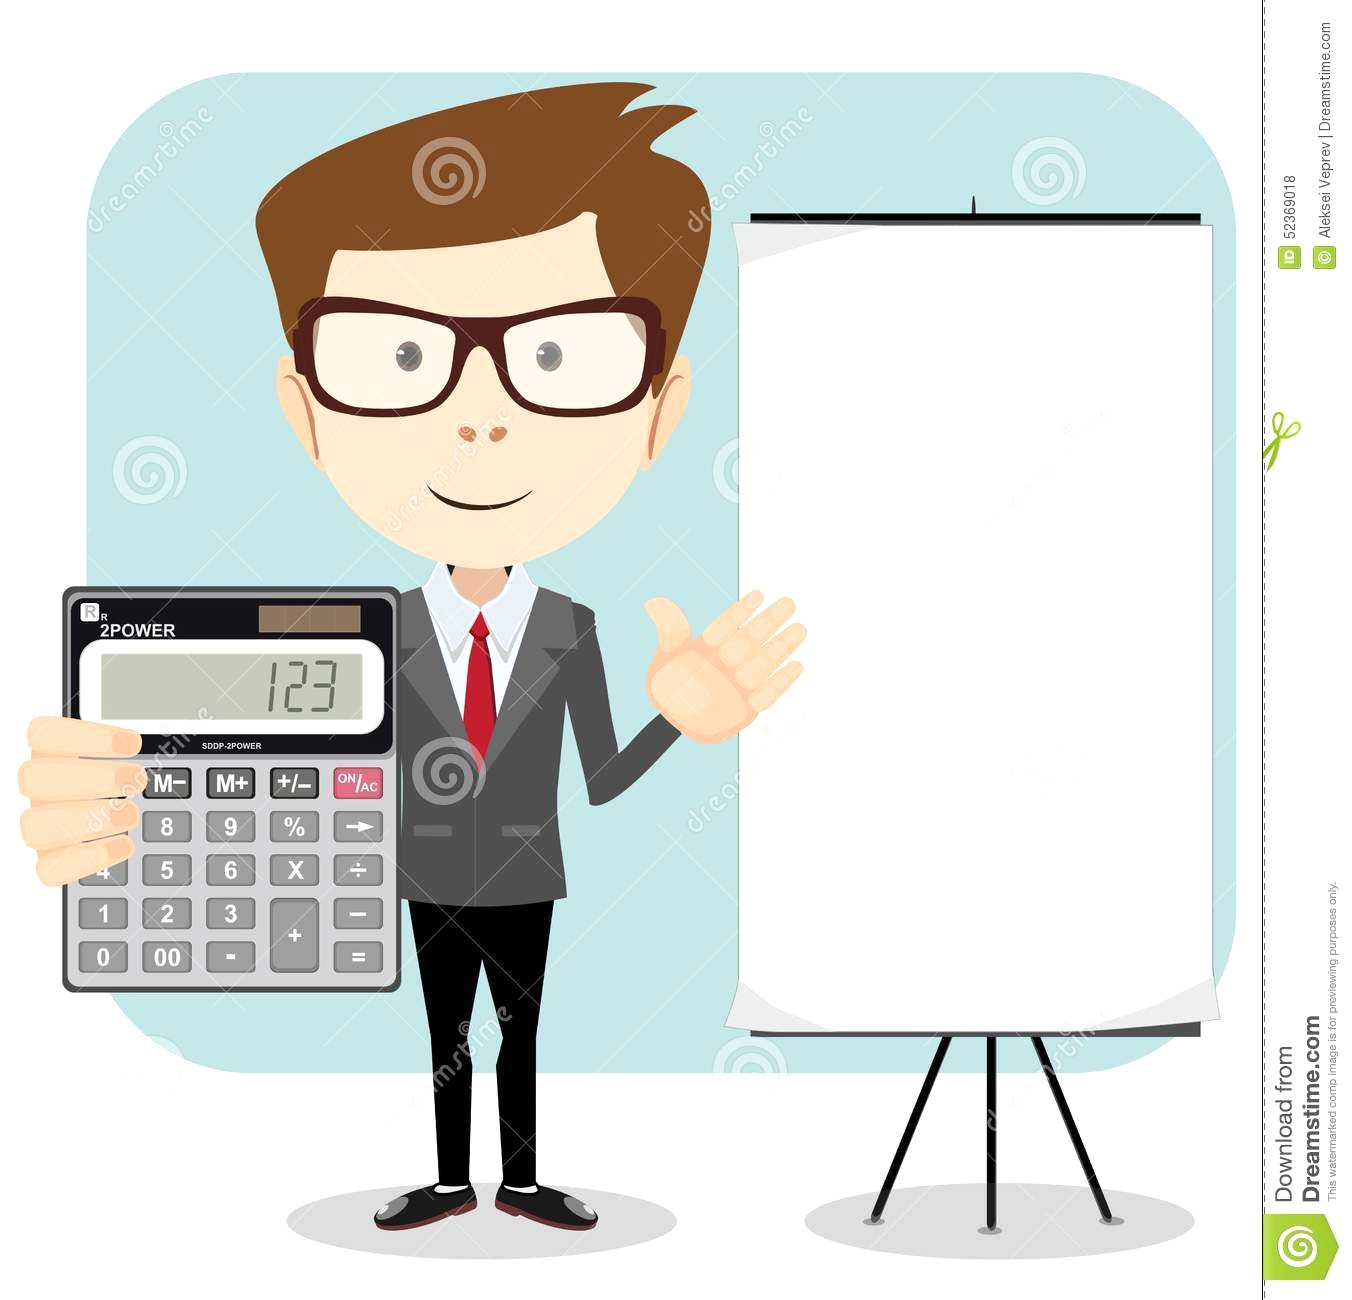 Accountant clipart 5 » Clipart Station.